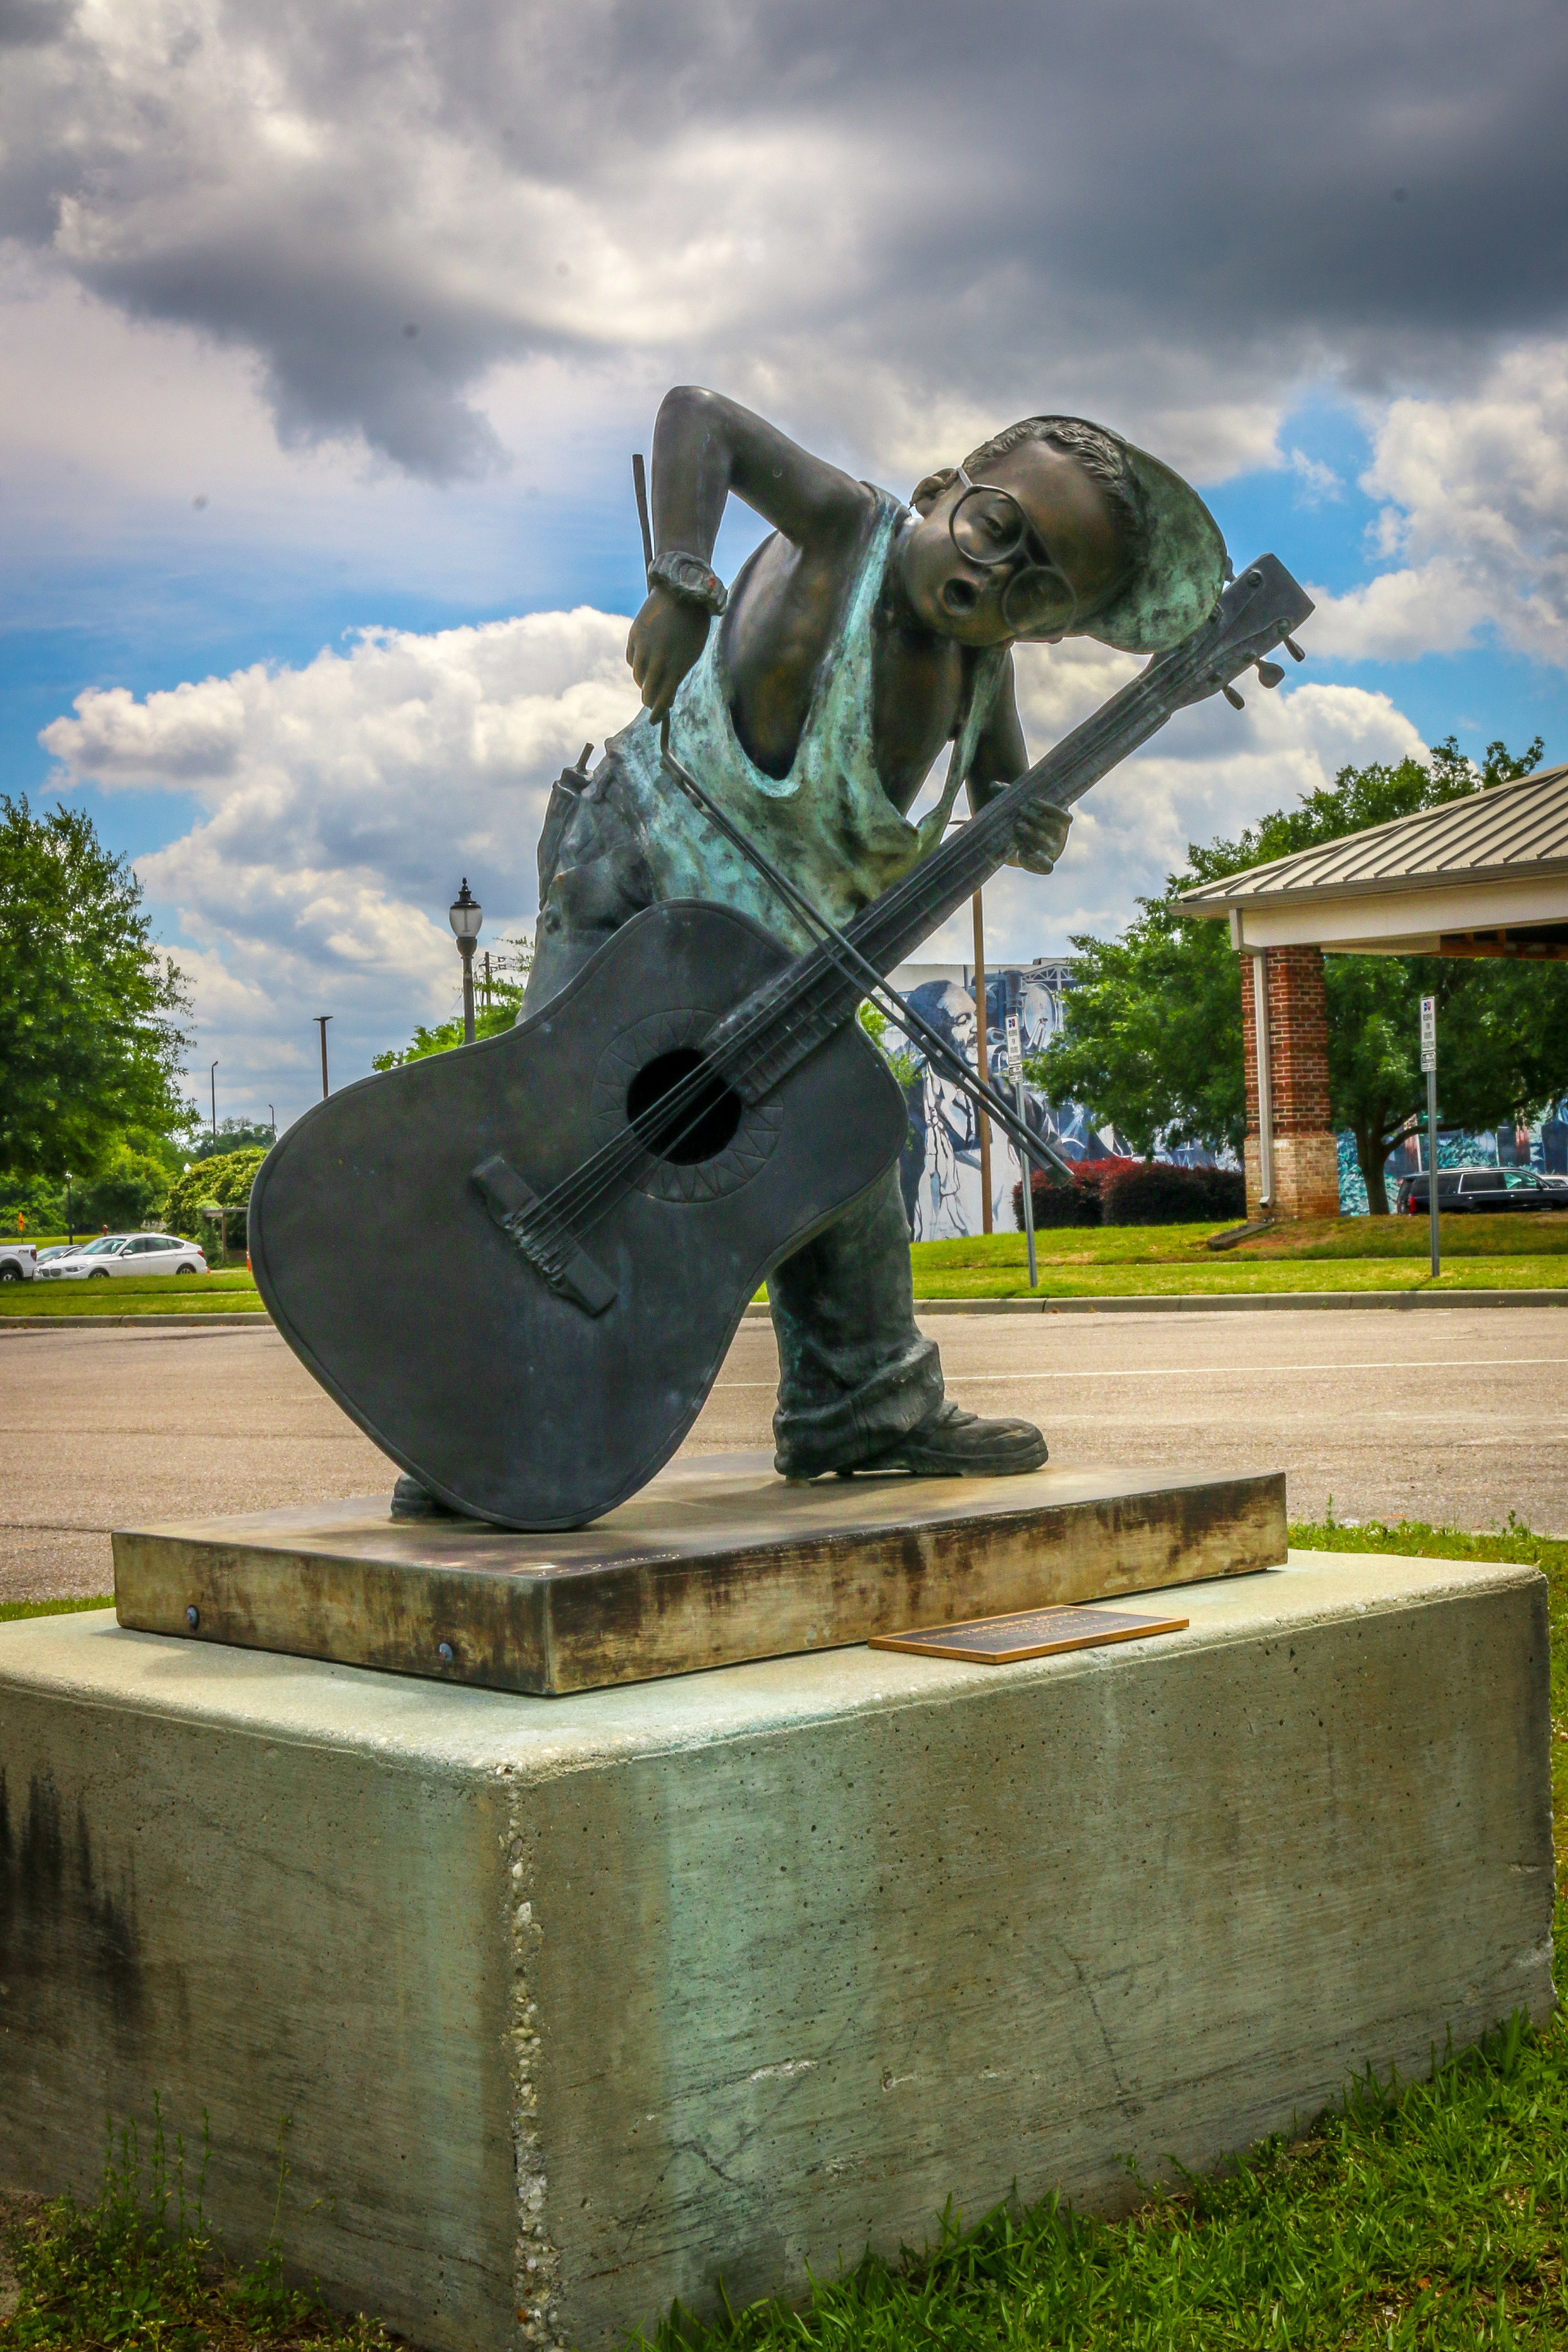 I LOVE This Statue in Dothan